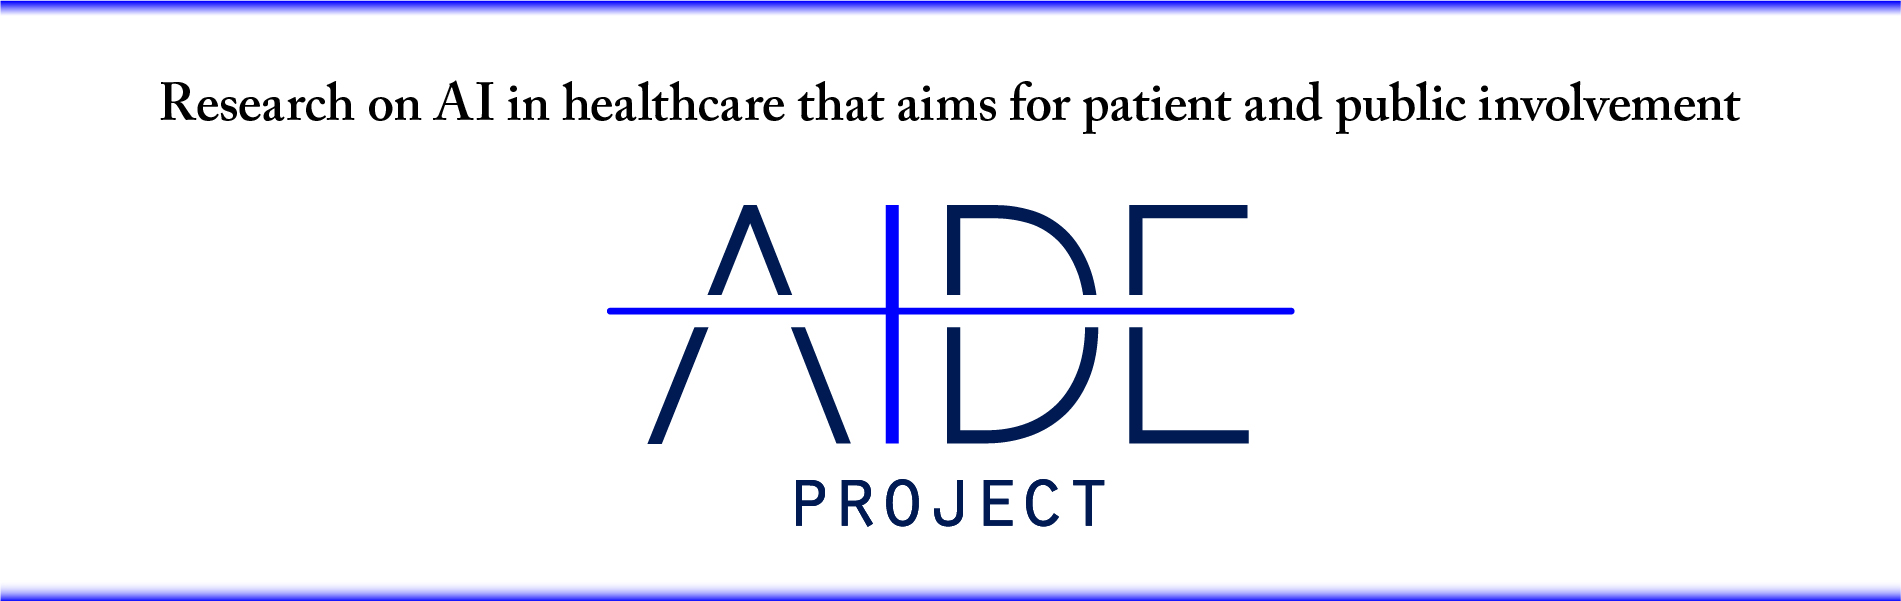 AIDE project: Research on AI in healthcare that aims for patient and public involvement